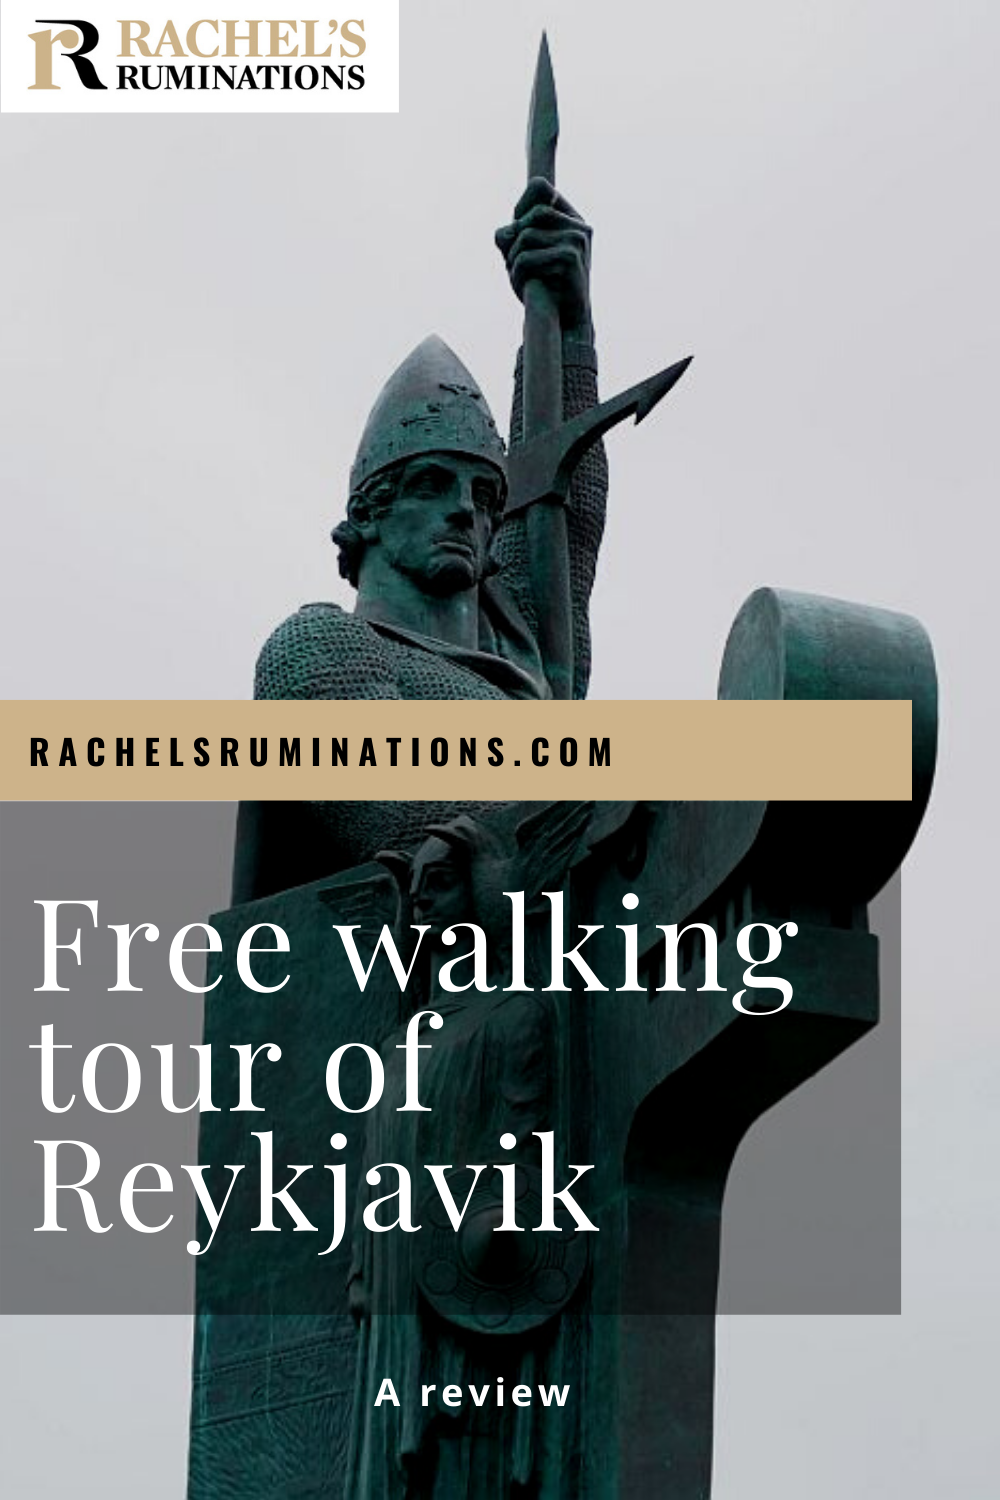 A review of the free walking tour of Reykjavik offered by City Walk. Such tours are a great introduction when you first arrive in a new city. walking tour | reykjavik | iceland via @rachelsruminations